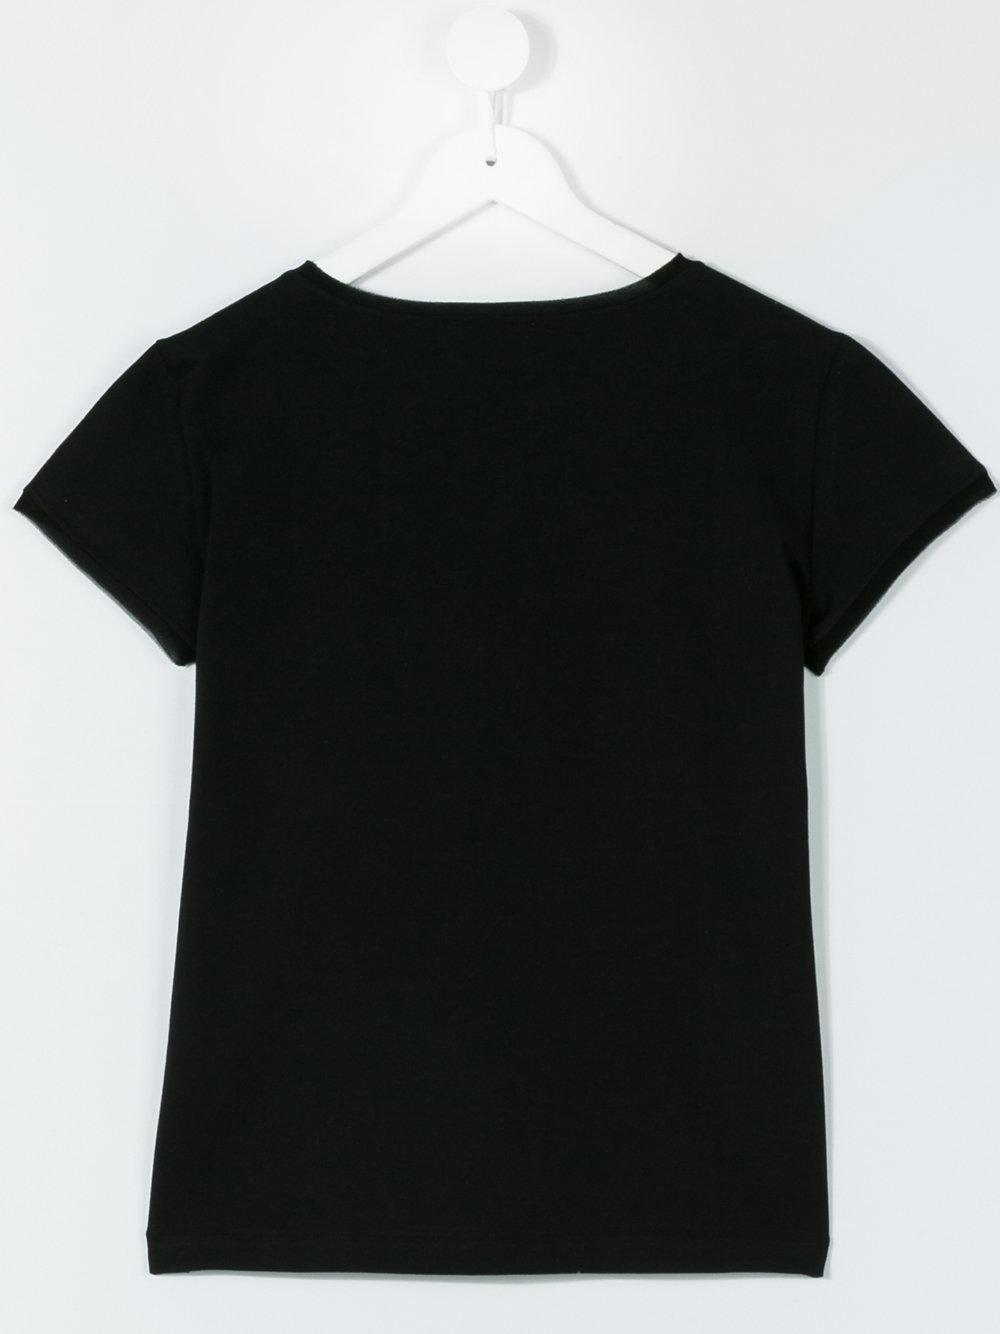 Lyst - Lanvin Teen Studded Logo T-shirt in Black